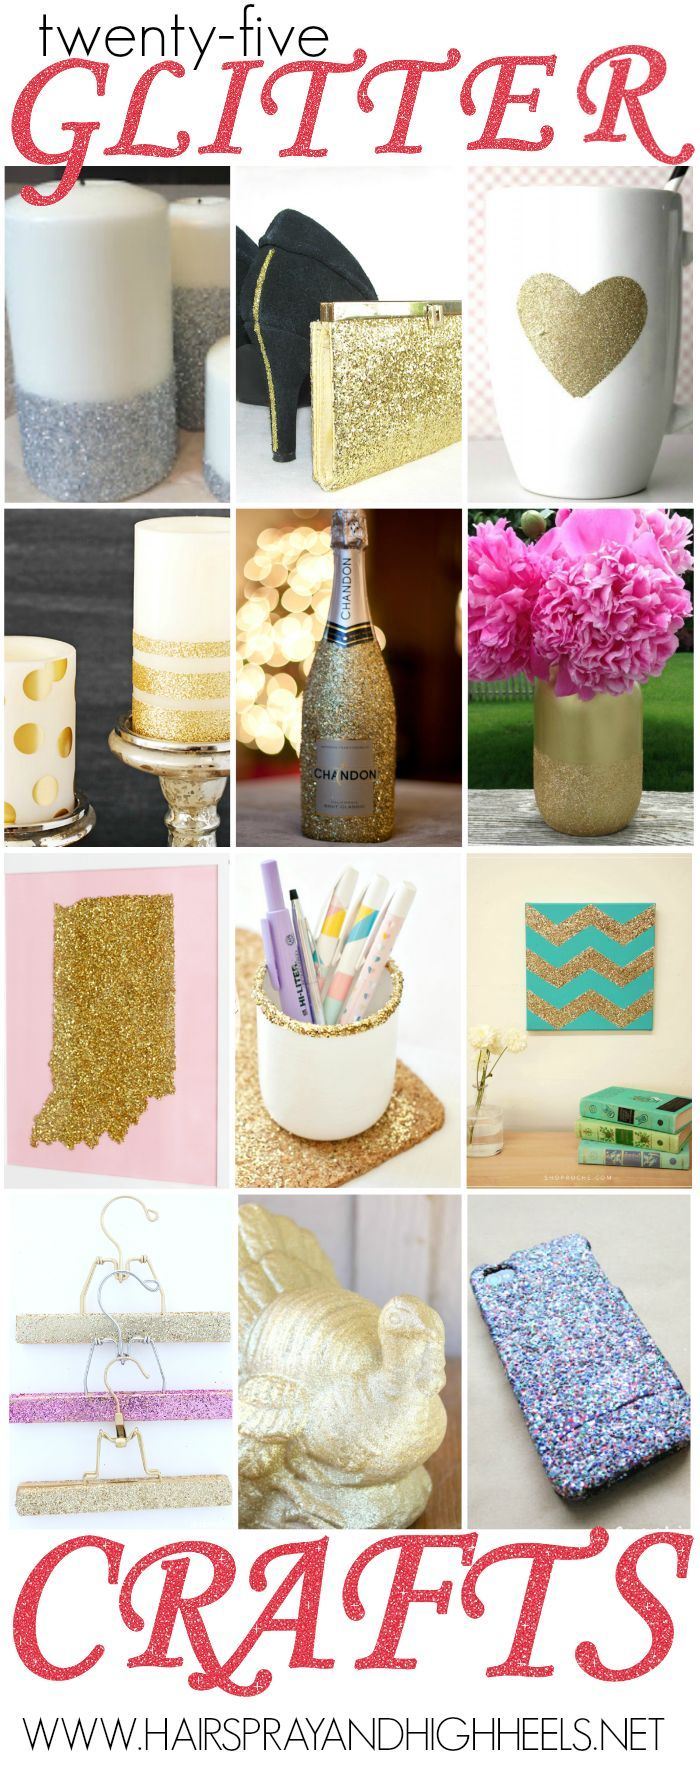 25 Glitter Crafts (With images) Glitter crafts, Glitter